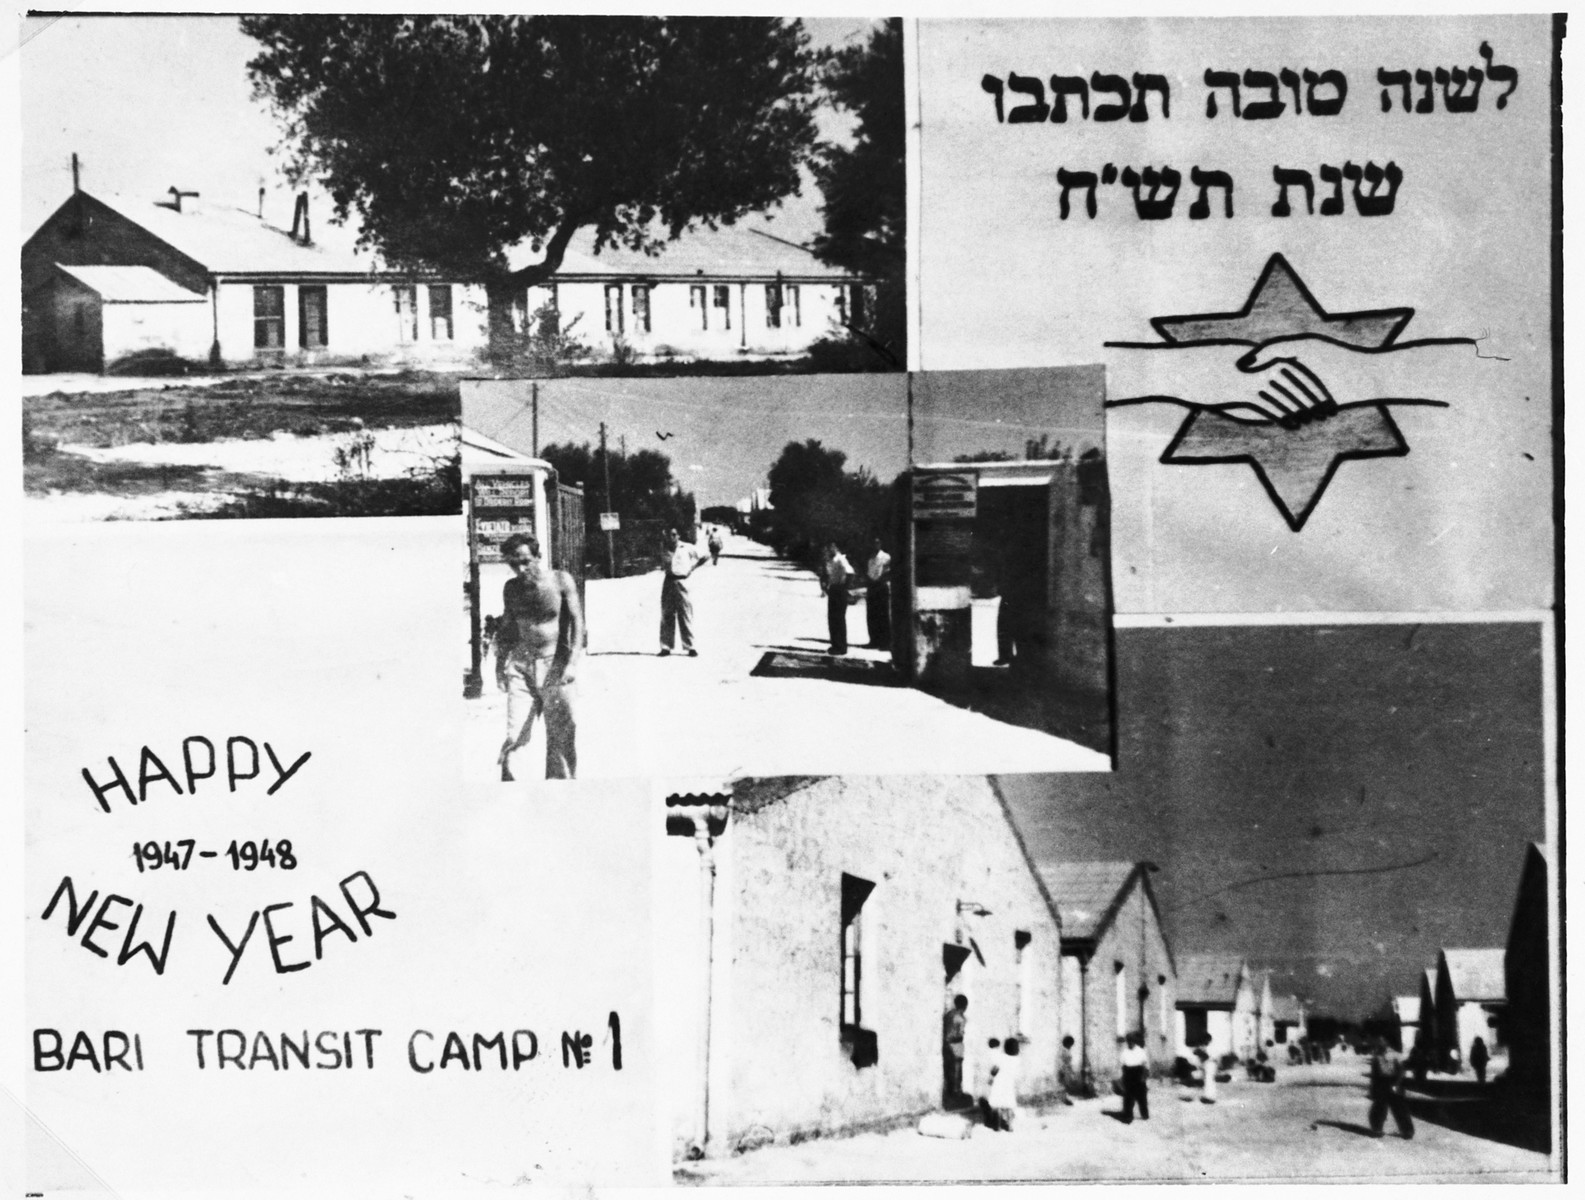 Jewish New Year's card with pictures of the Bari Transit camp.  The card was sent by Abraham Bludztein to his cousin Shie Zoltak.